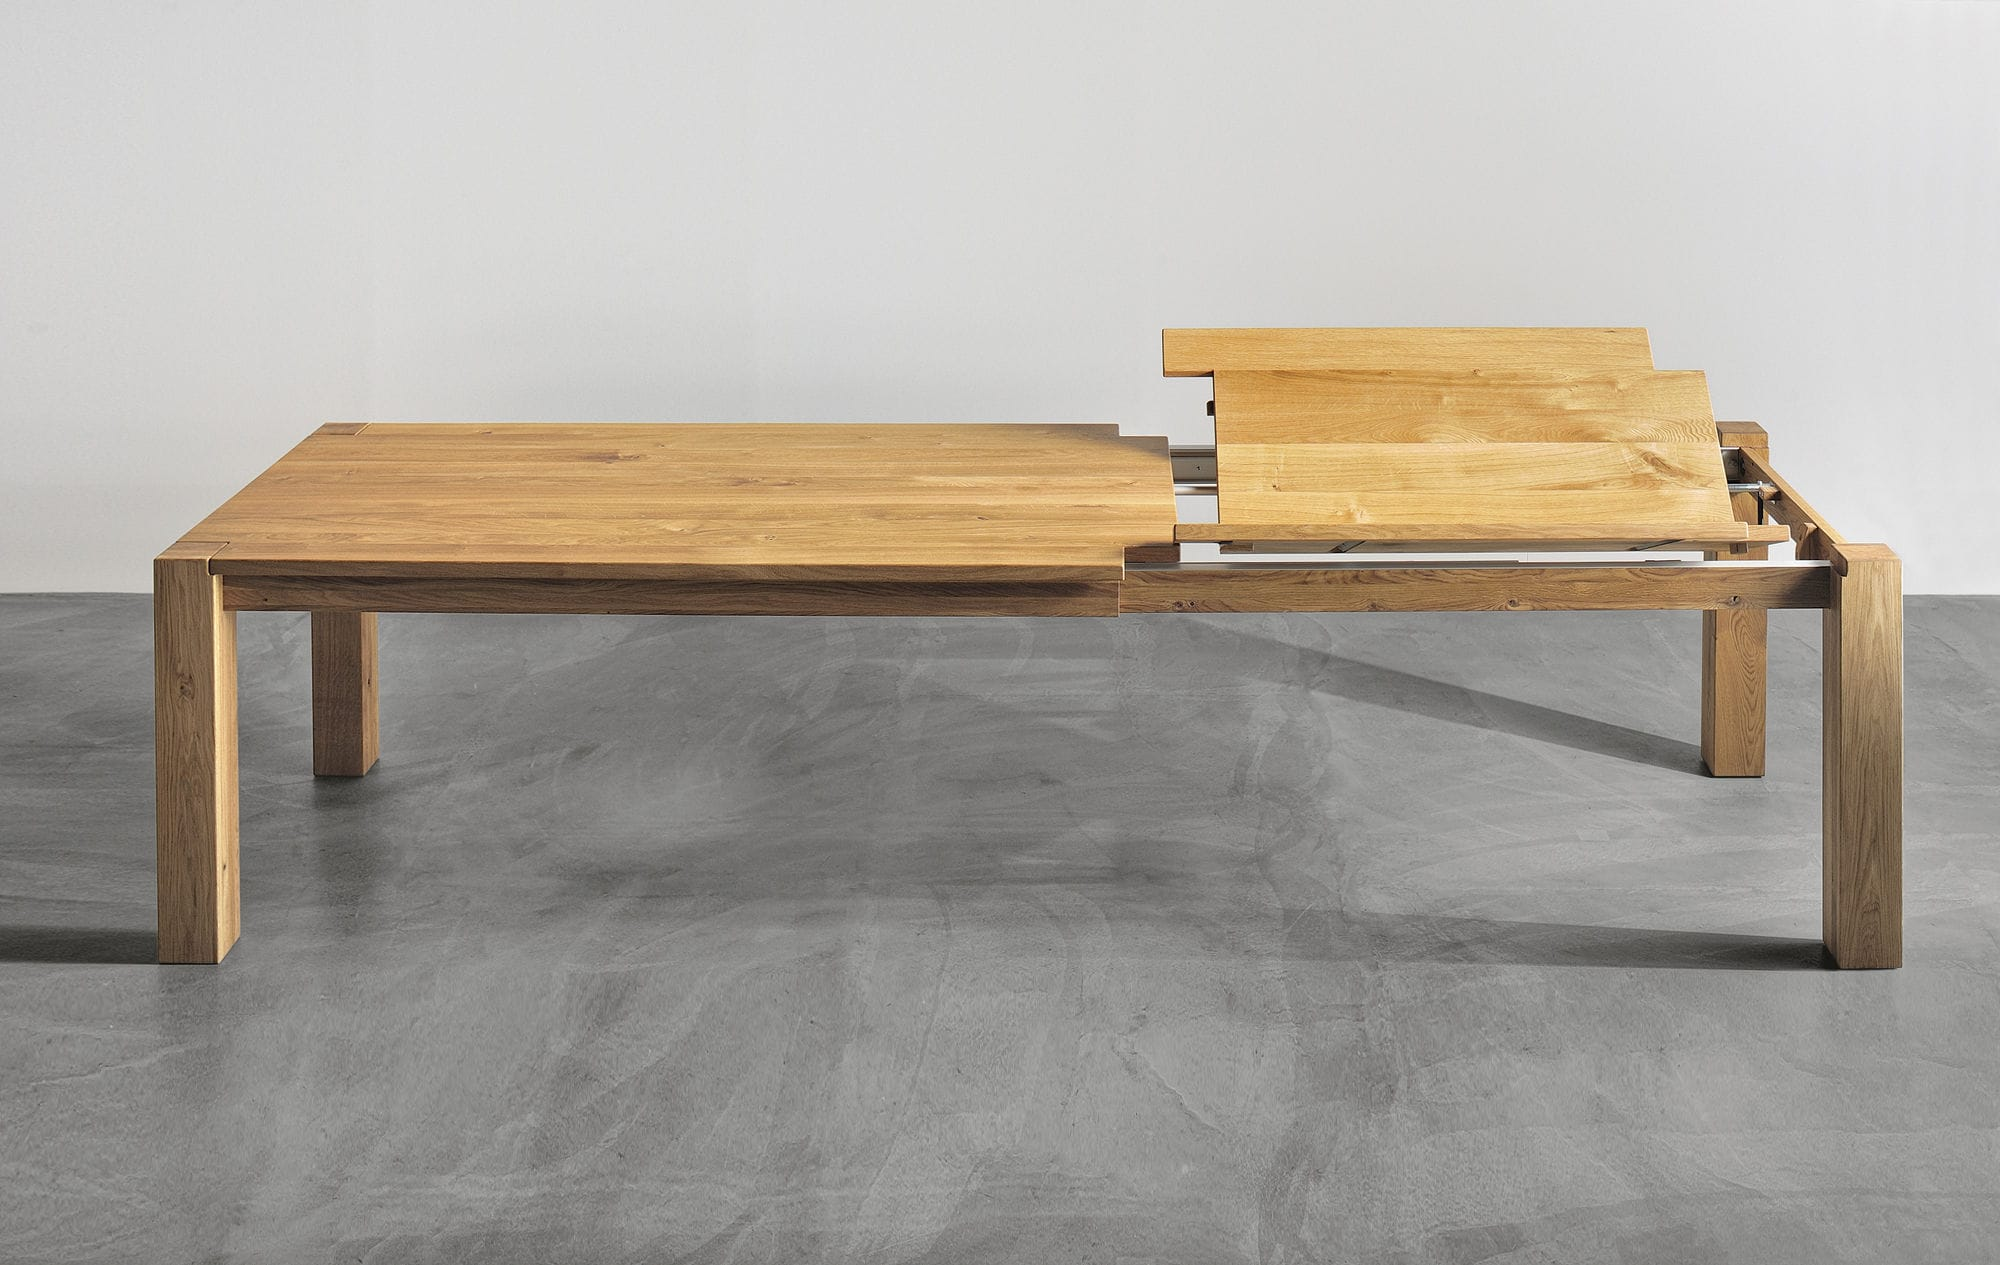 table manger design scandinave en chne en noyer en bois massif - Table Bois Massif Rallonge